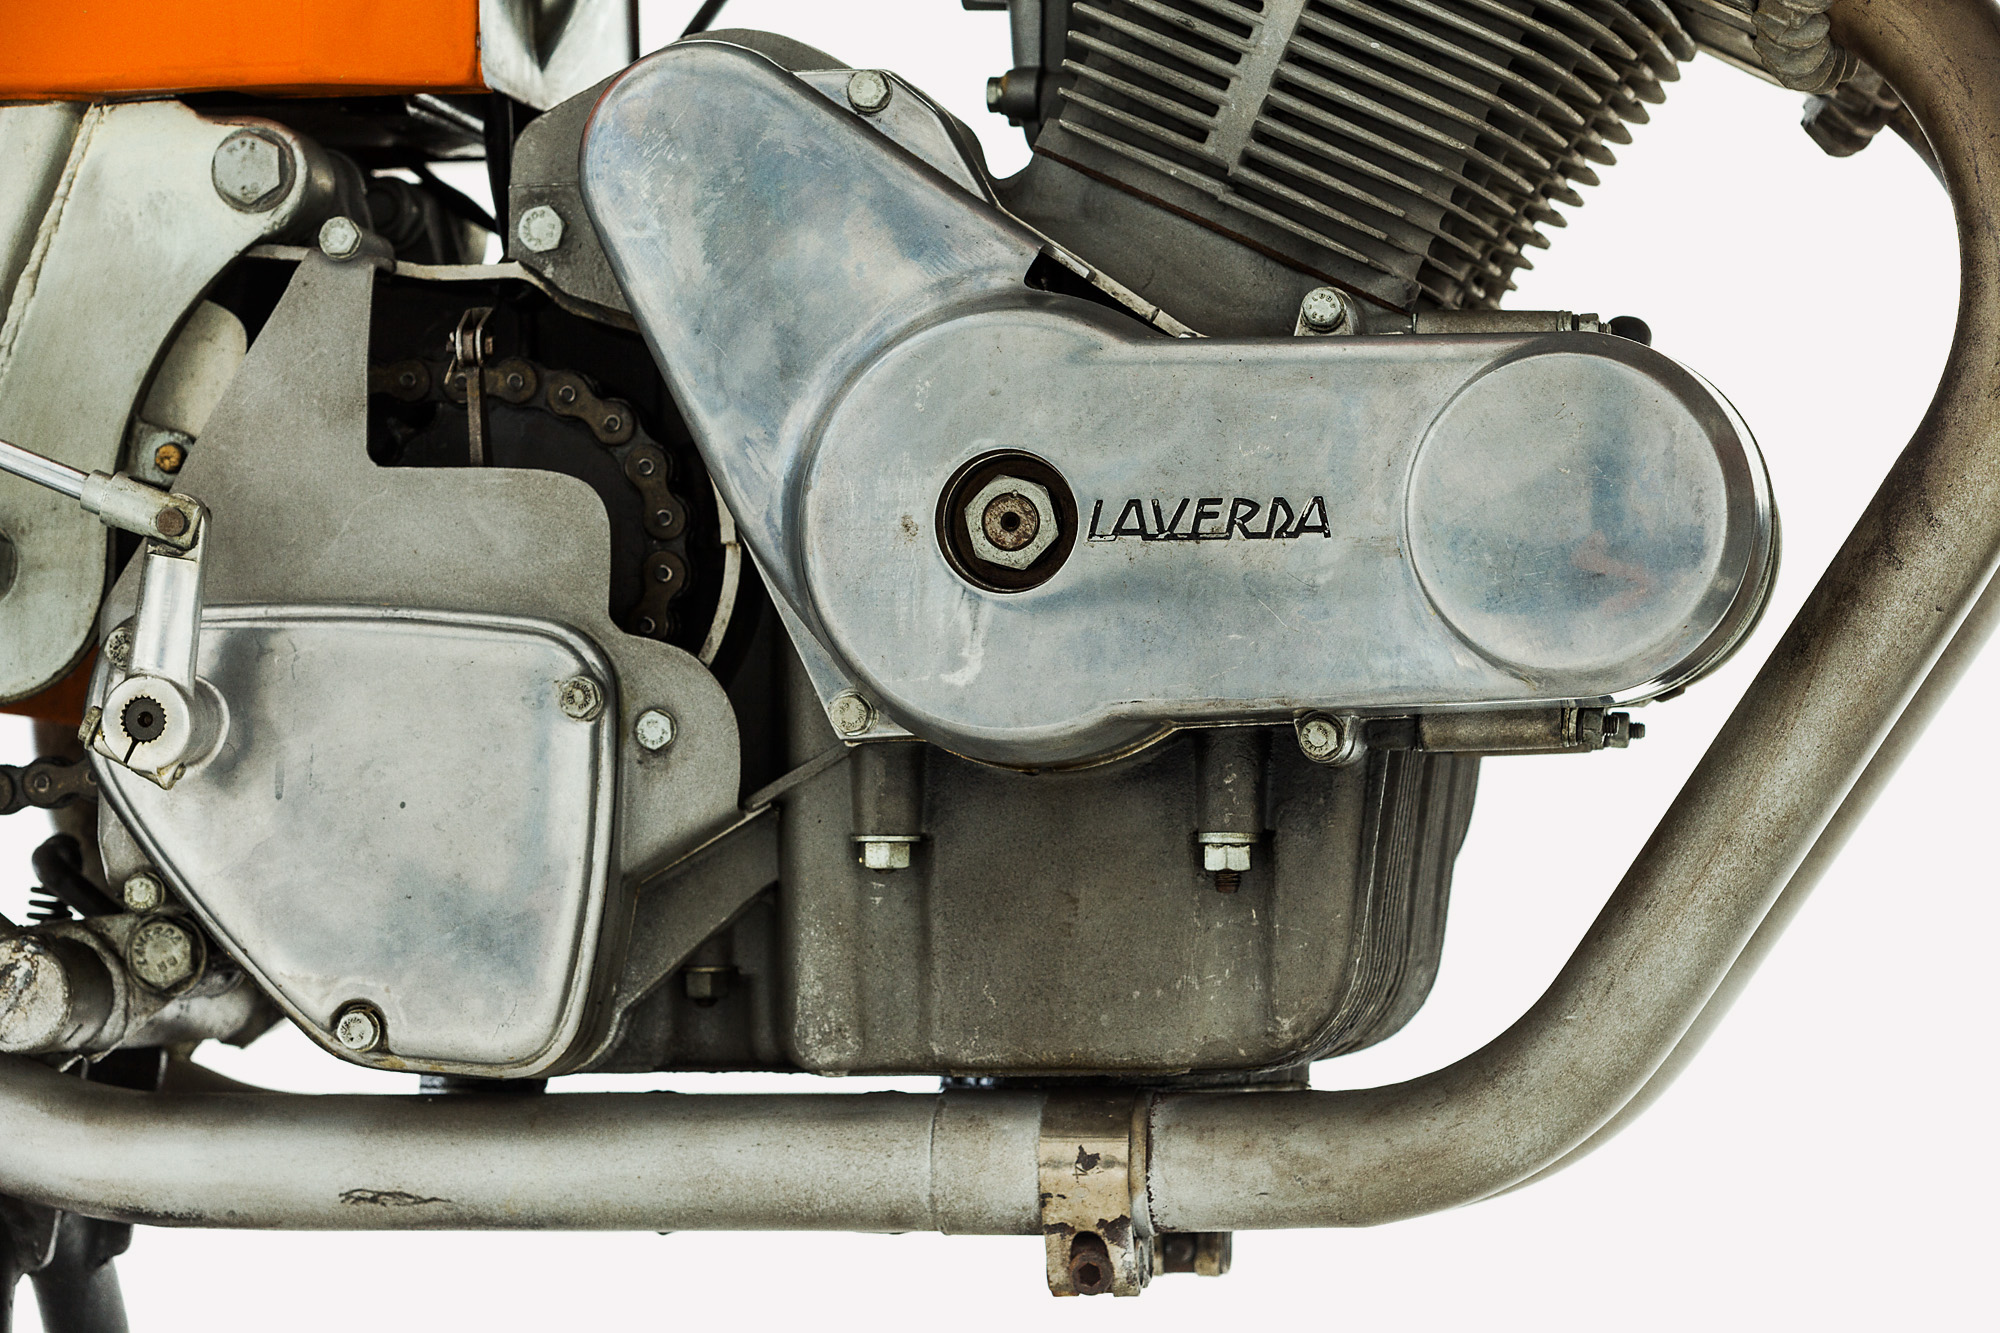 1972 Laverda SFC Side